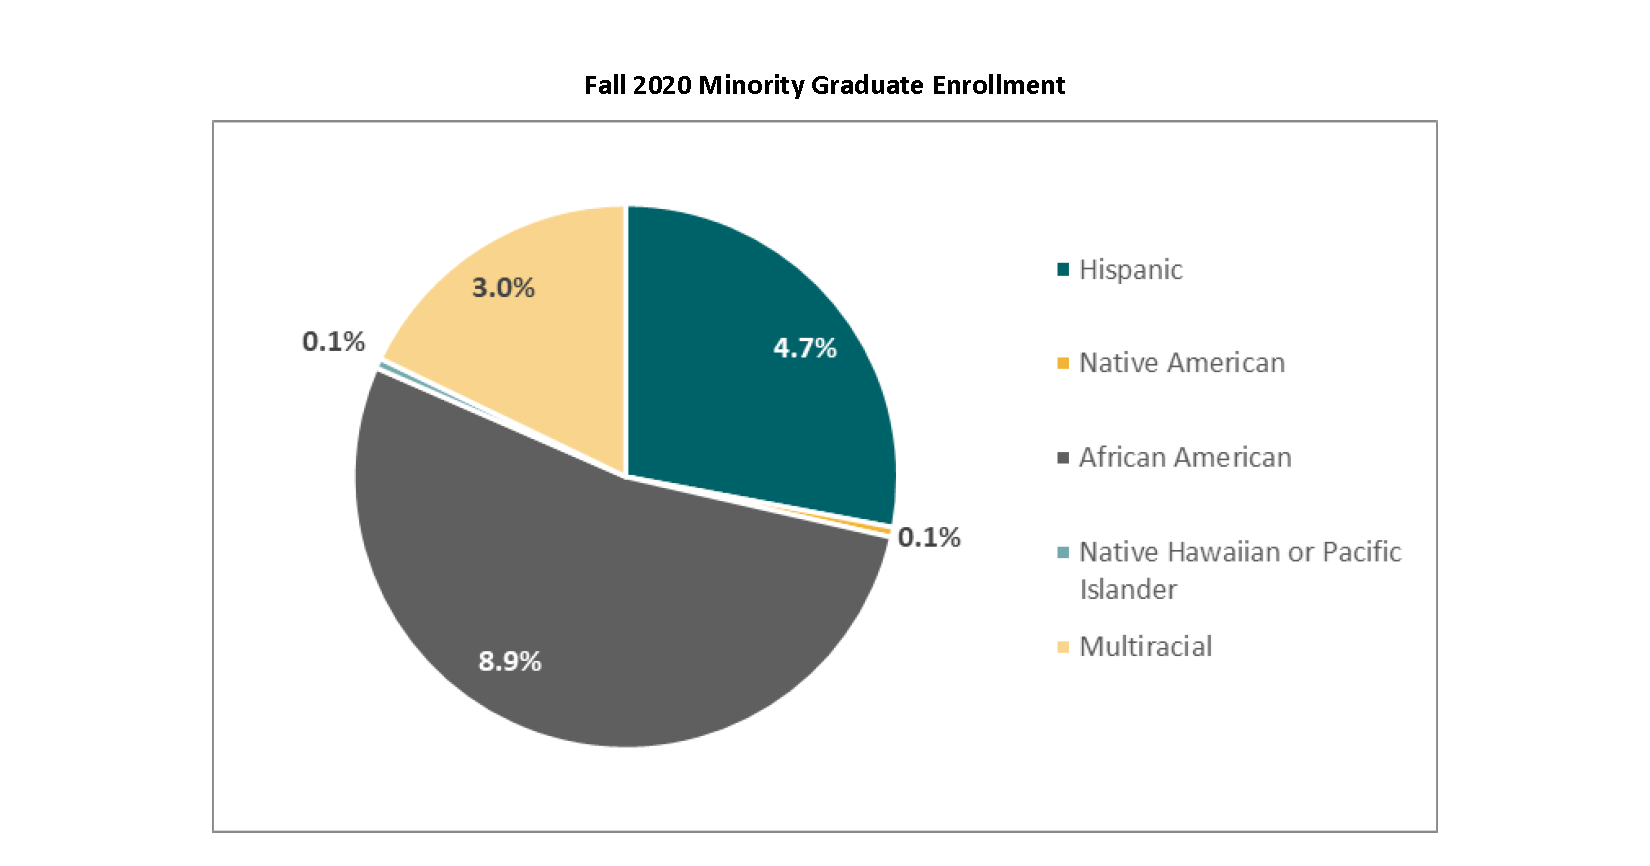 Fall 2020 Minority Graduate Enrollment